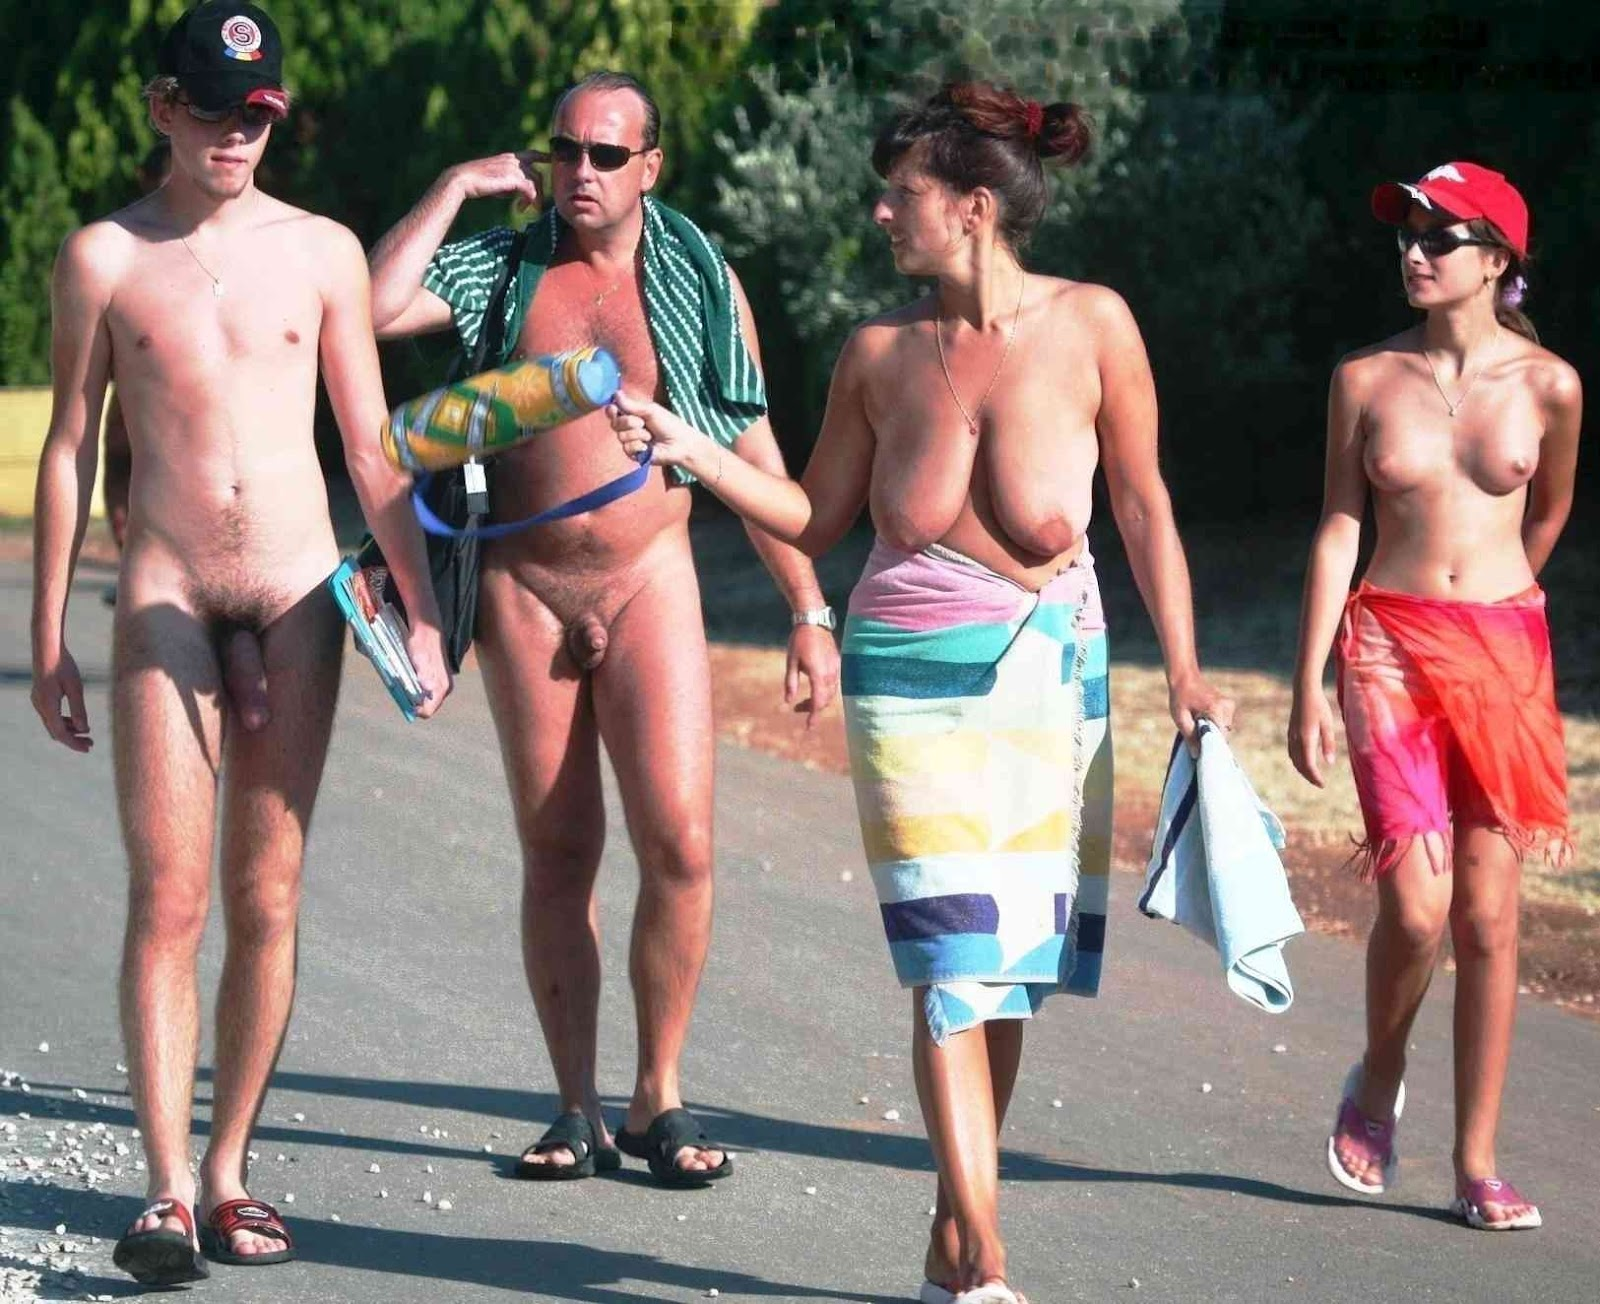 son boy mom nudist The Whole Family Is Looking At The Son's Huge Wang